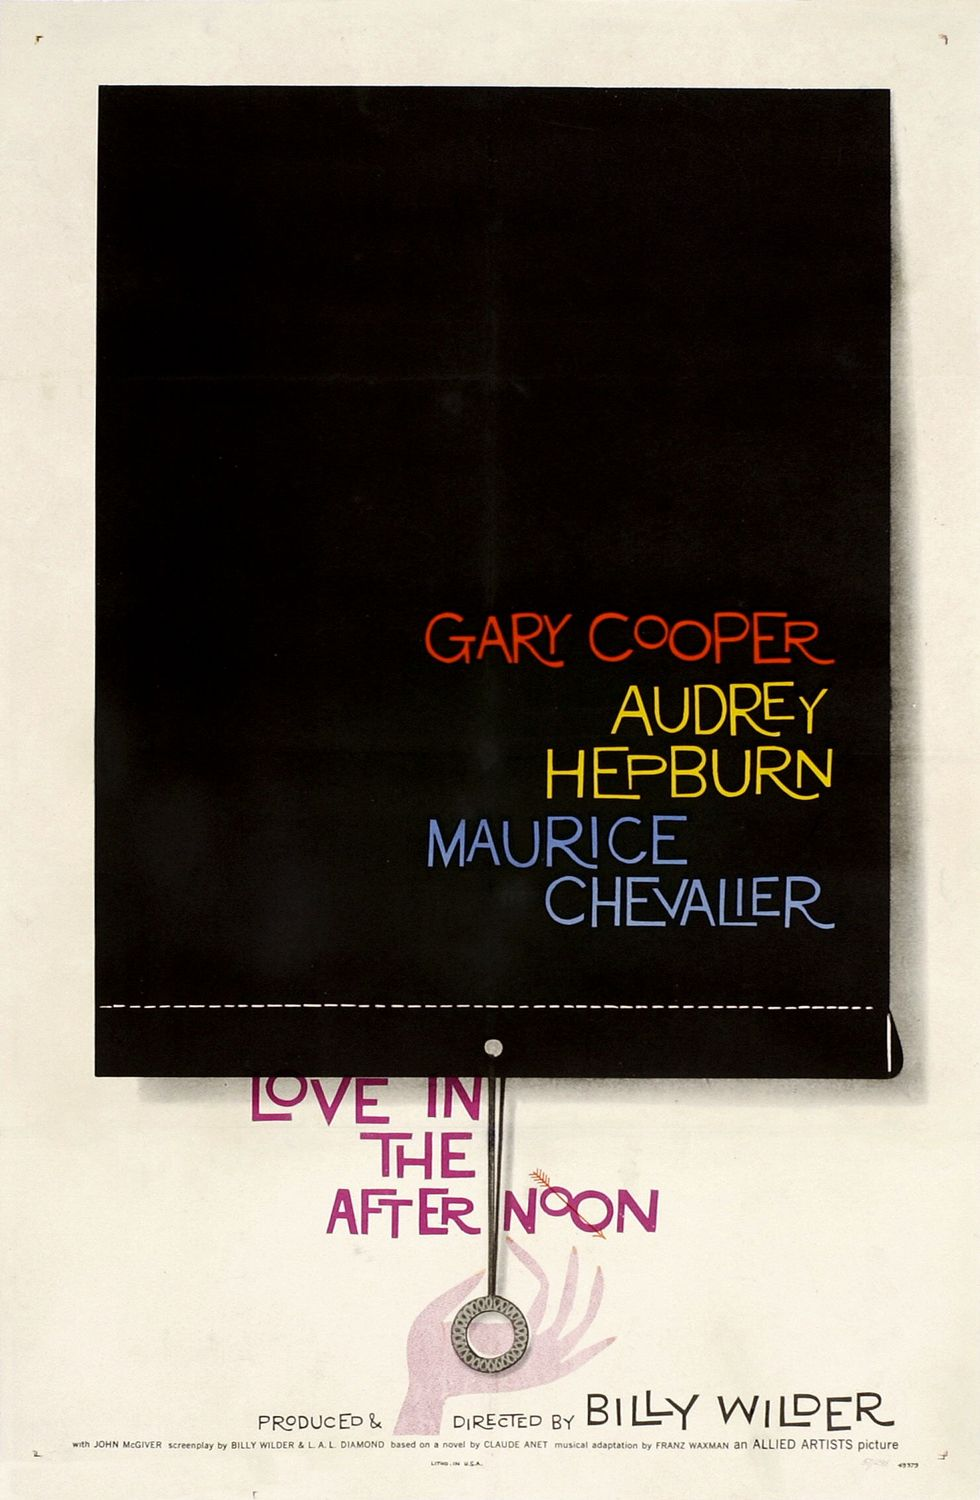 Appreciating: Saul Bass and the Movies: Love_in_the_afternoon_(1957)_-_movie_poster.jpg